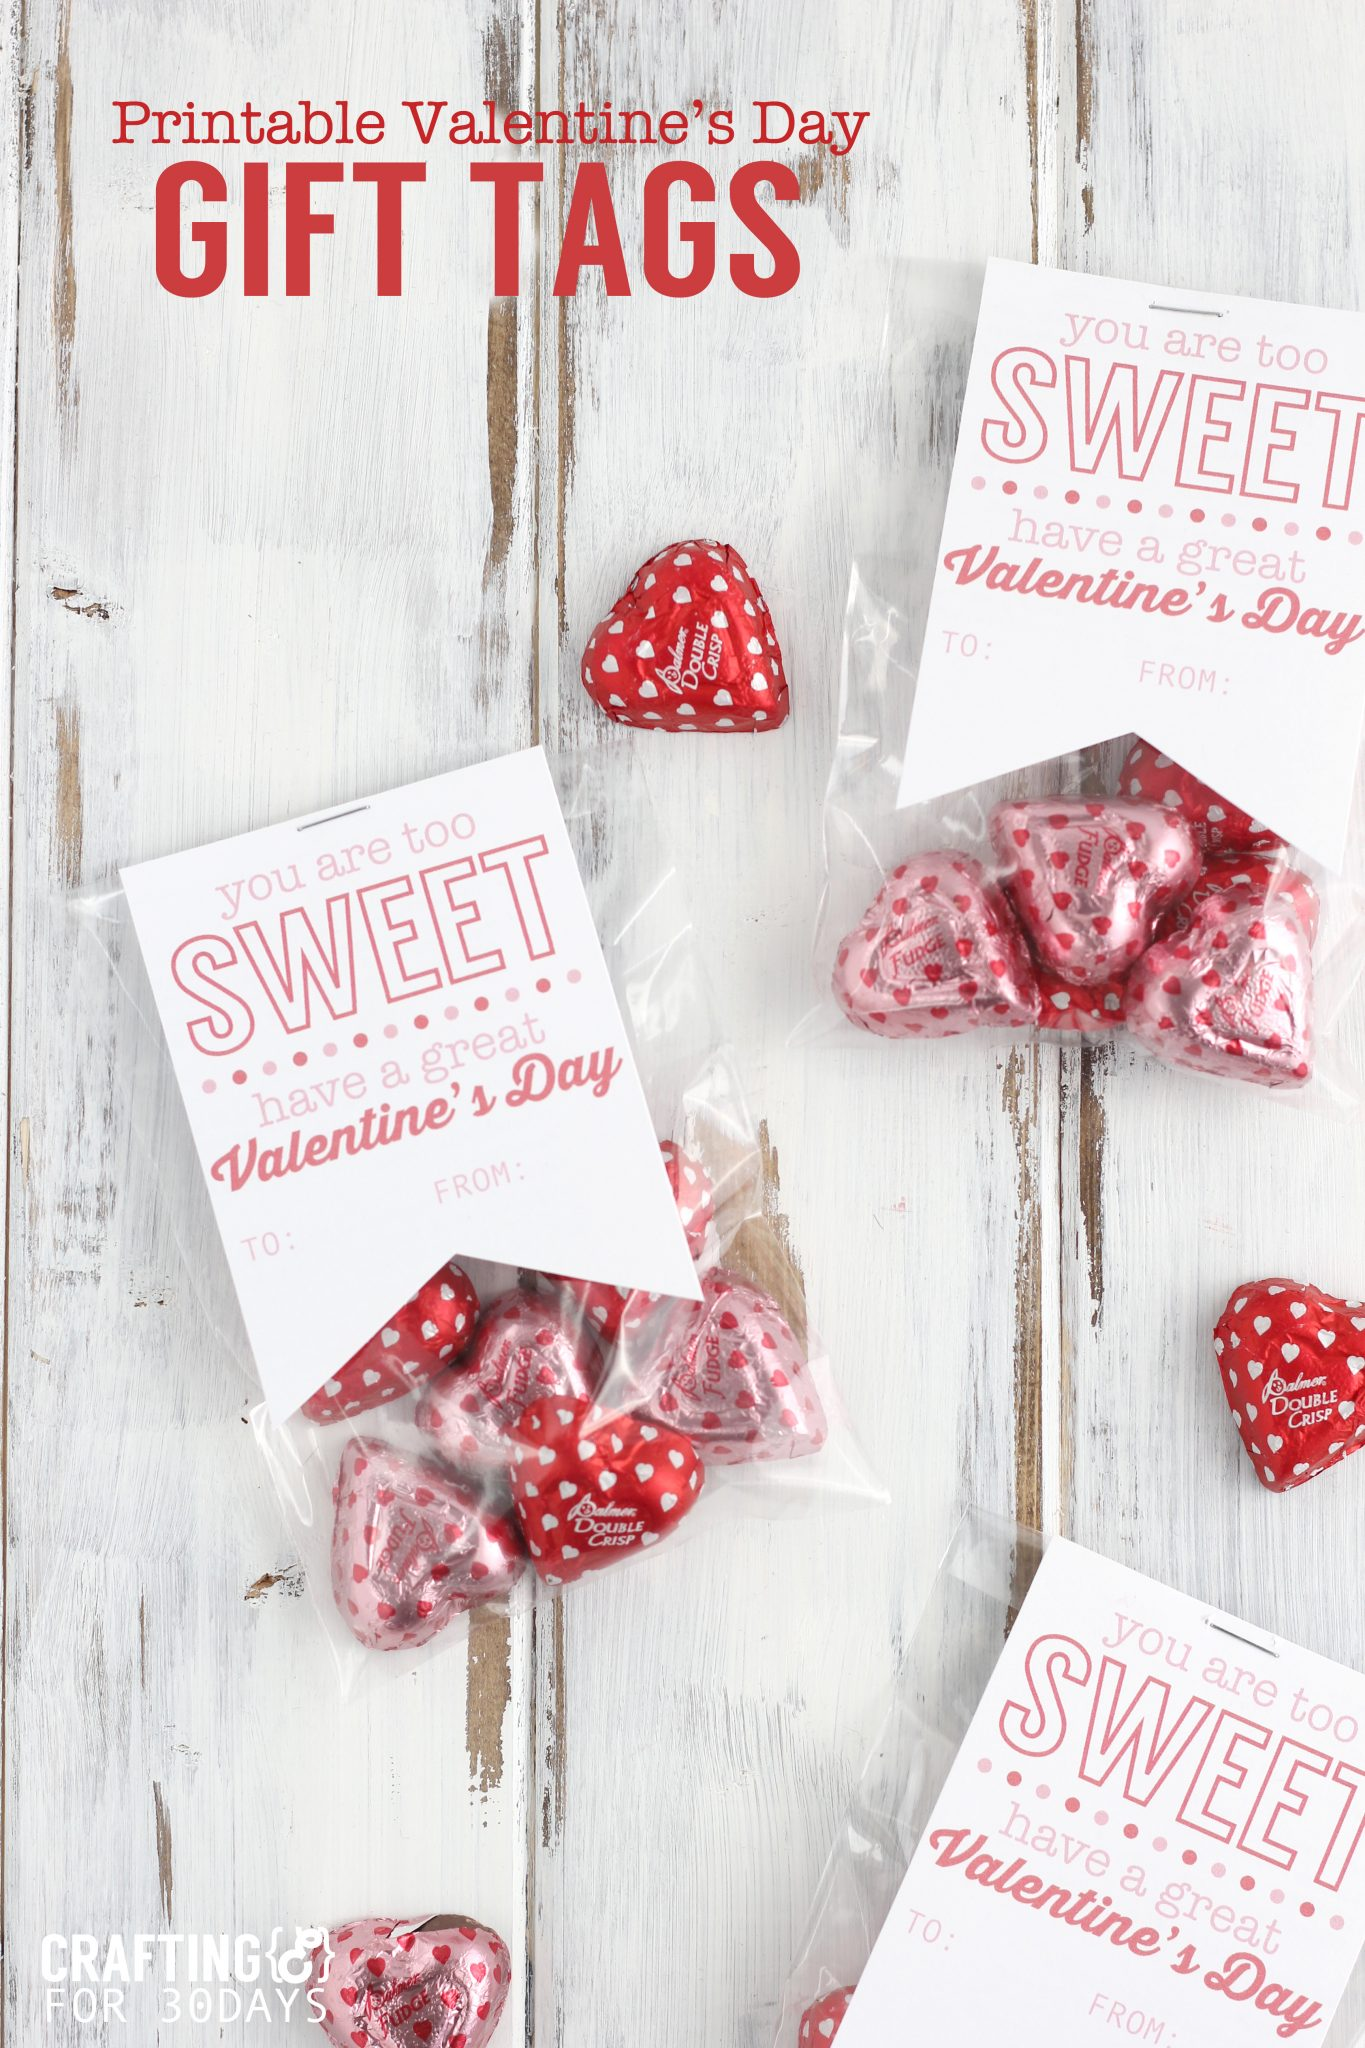 It's just a photo of Witty Printable Valentine Tag